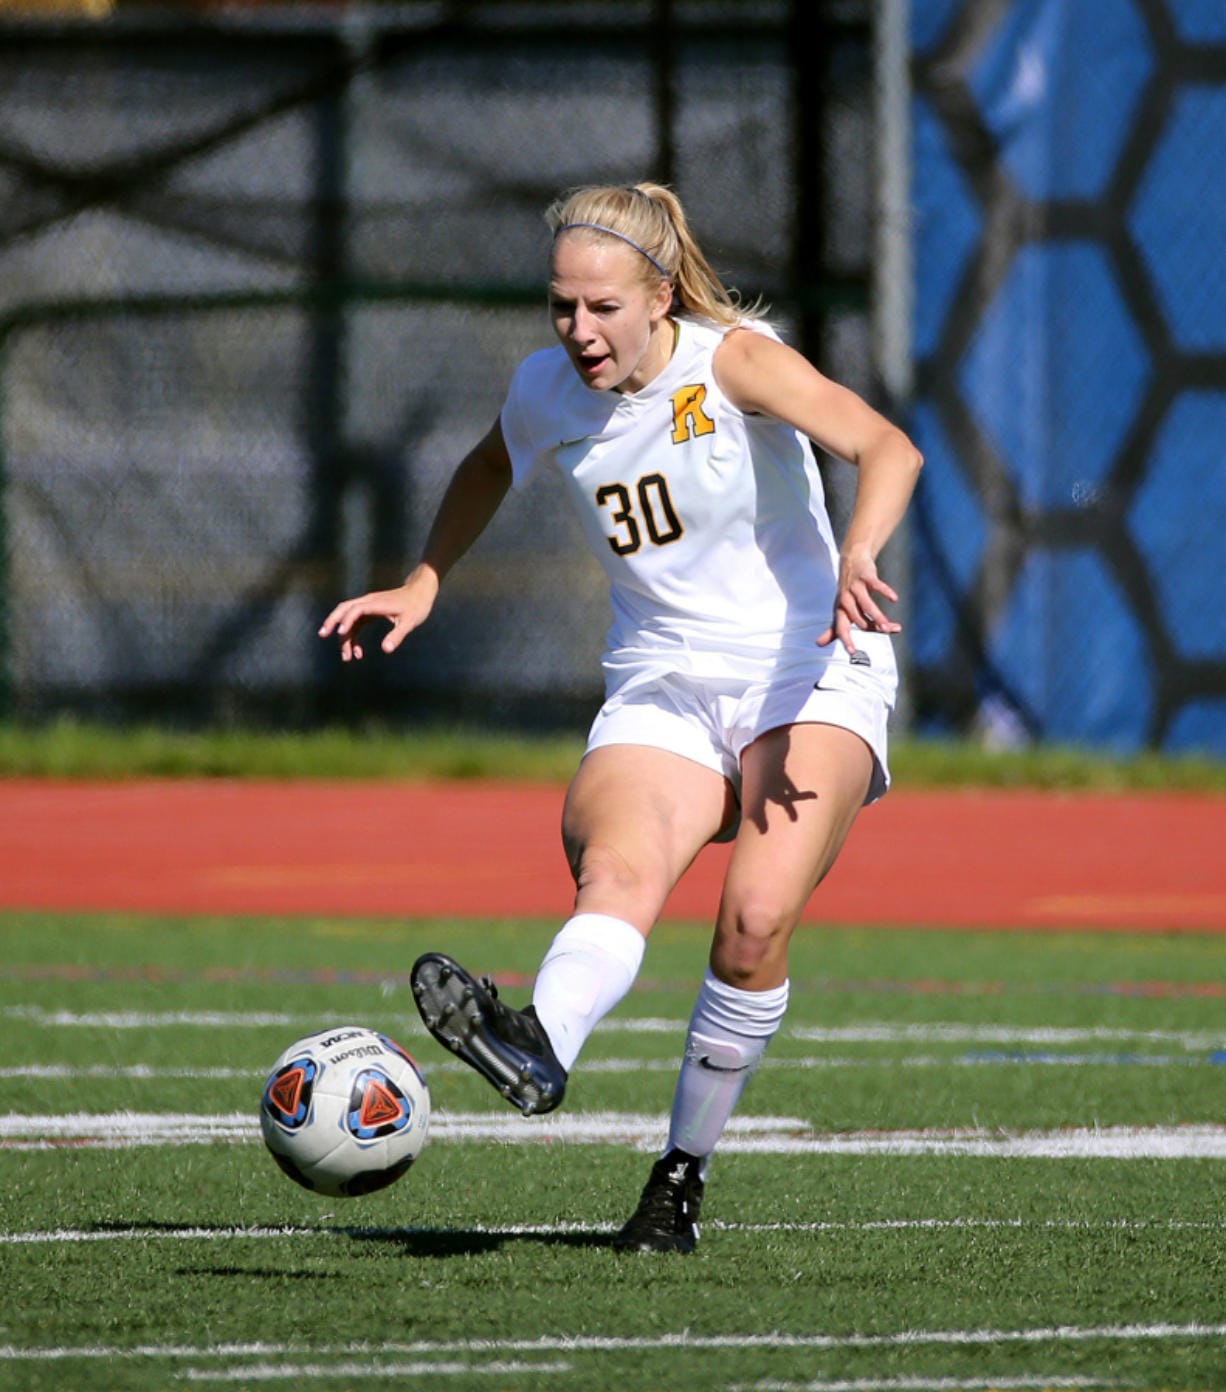 Jorie Freitag started 56 games over her four-year soccer career at the University of Rochester.